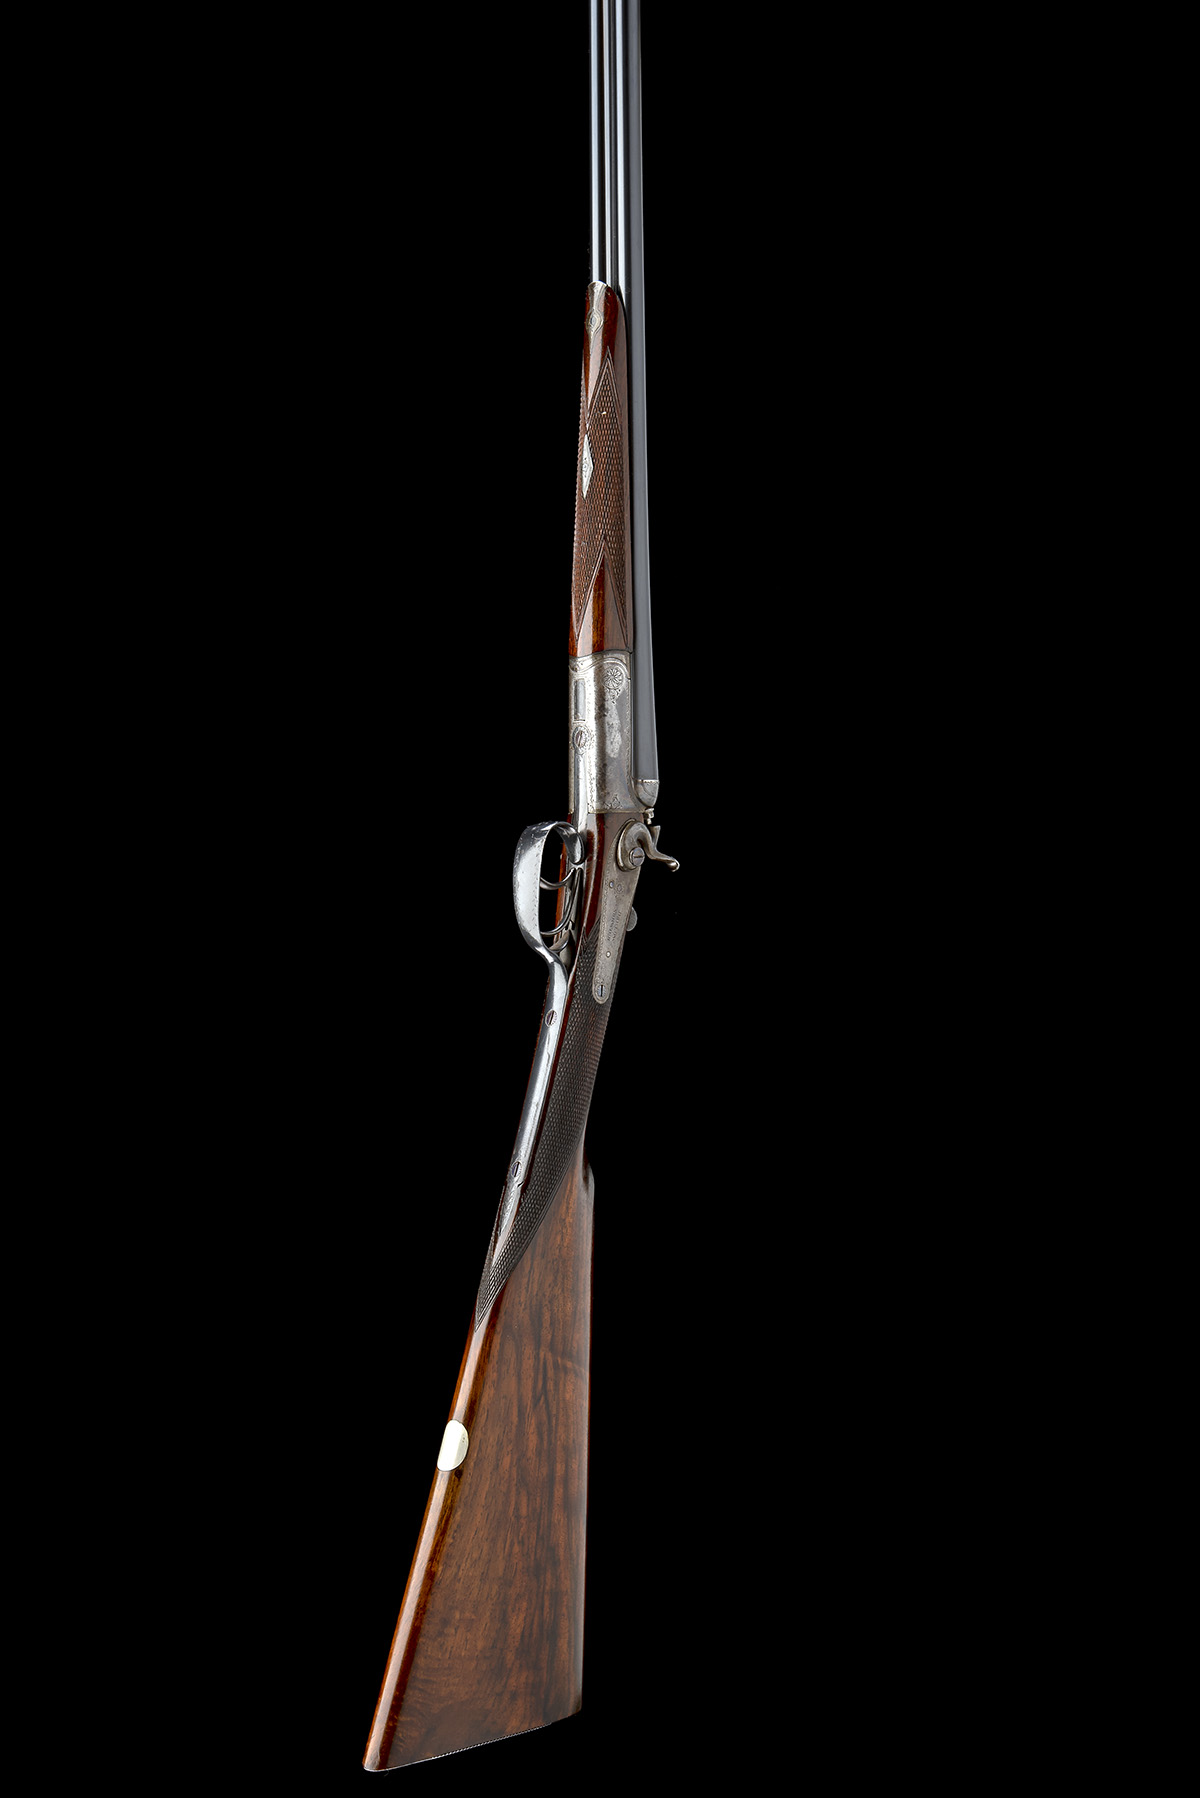 DARLOW (NORWICH) A .410 (2 1/2IN.) DOUBLE-BARRELLED TOPLEVER HAMMERGUN, serial no. H21351, for 1934, - Image 8 of 8